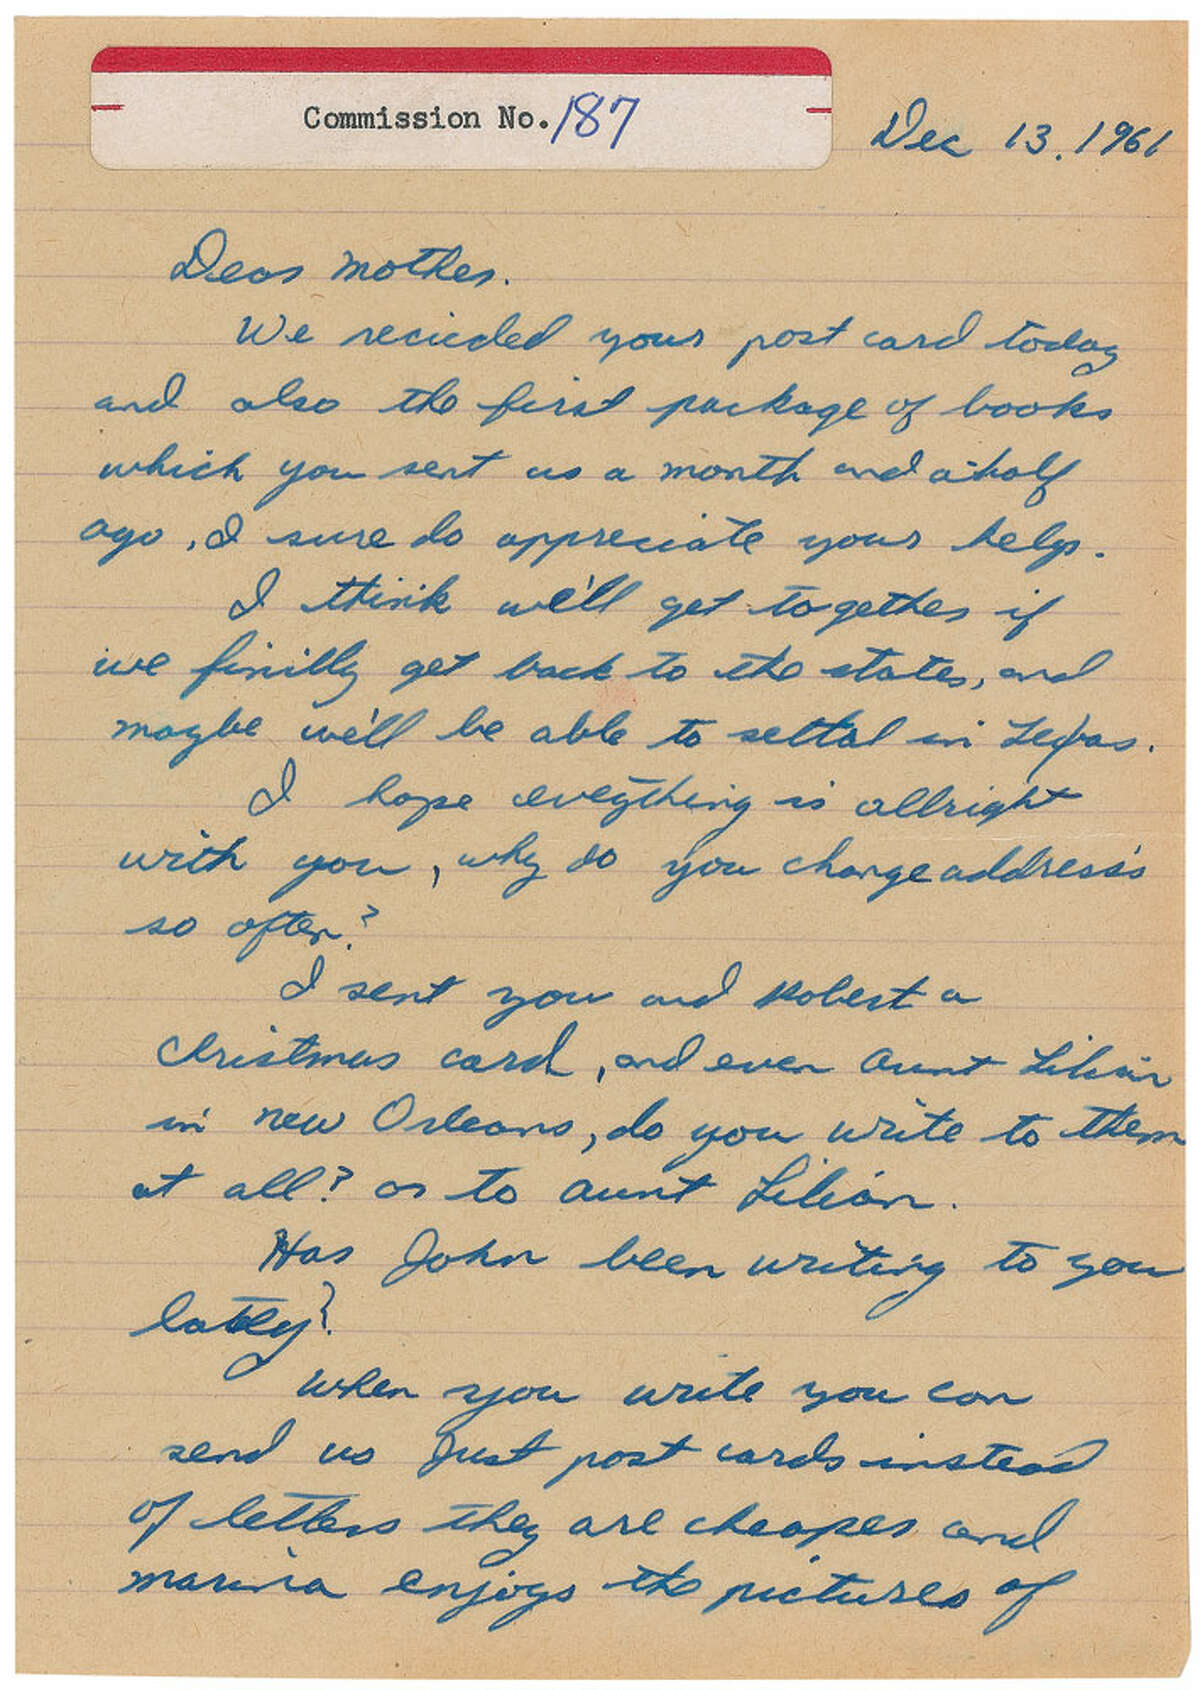 A letter written by JFK assassin Lee Harvey Oswald is being auctioned by RR Auction in Boston.